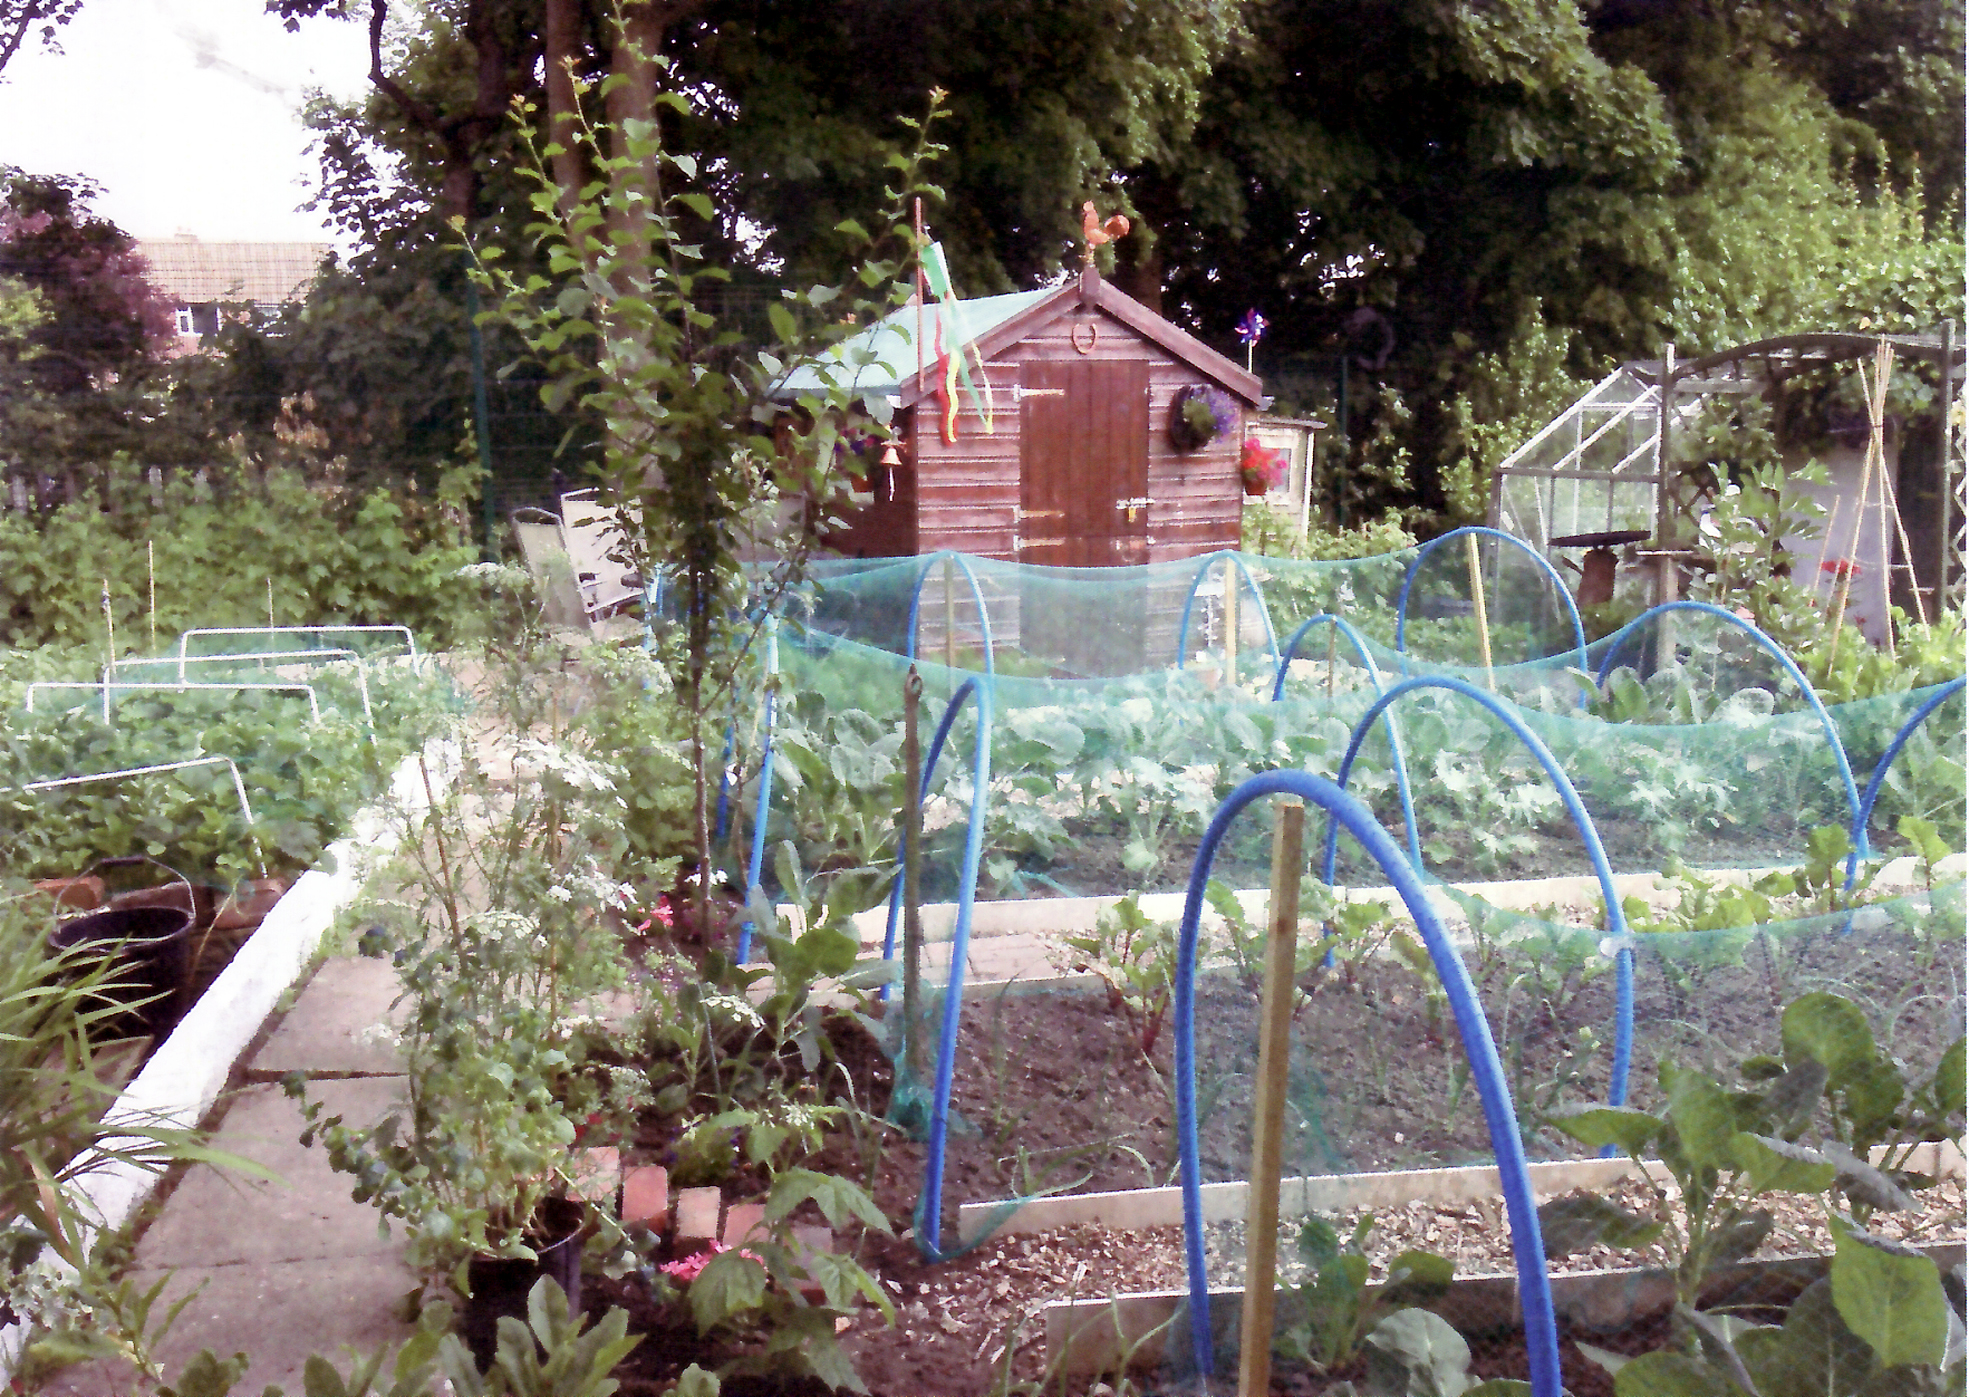 An award-winning allotment in Astley Bridge, belonging to Christine and Bernard Fallon